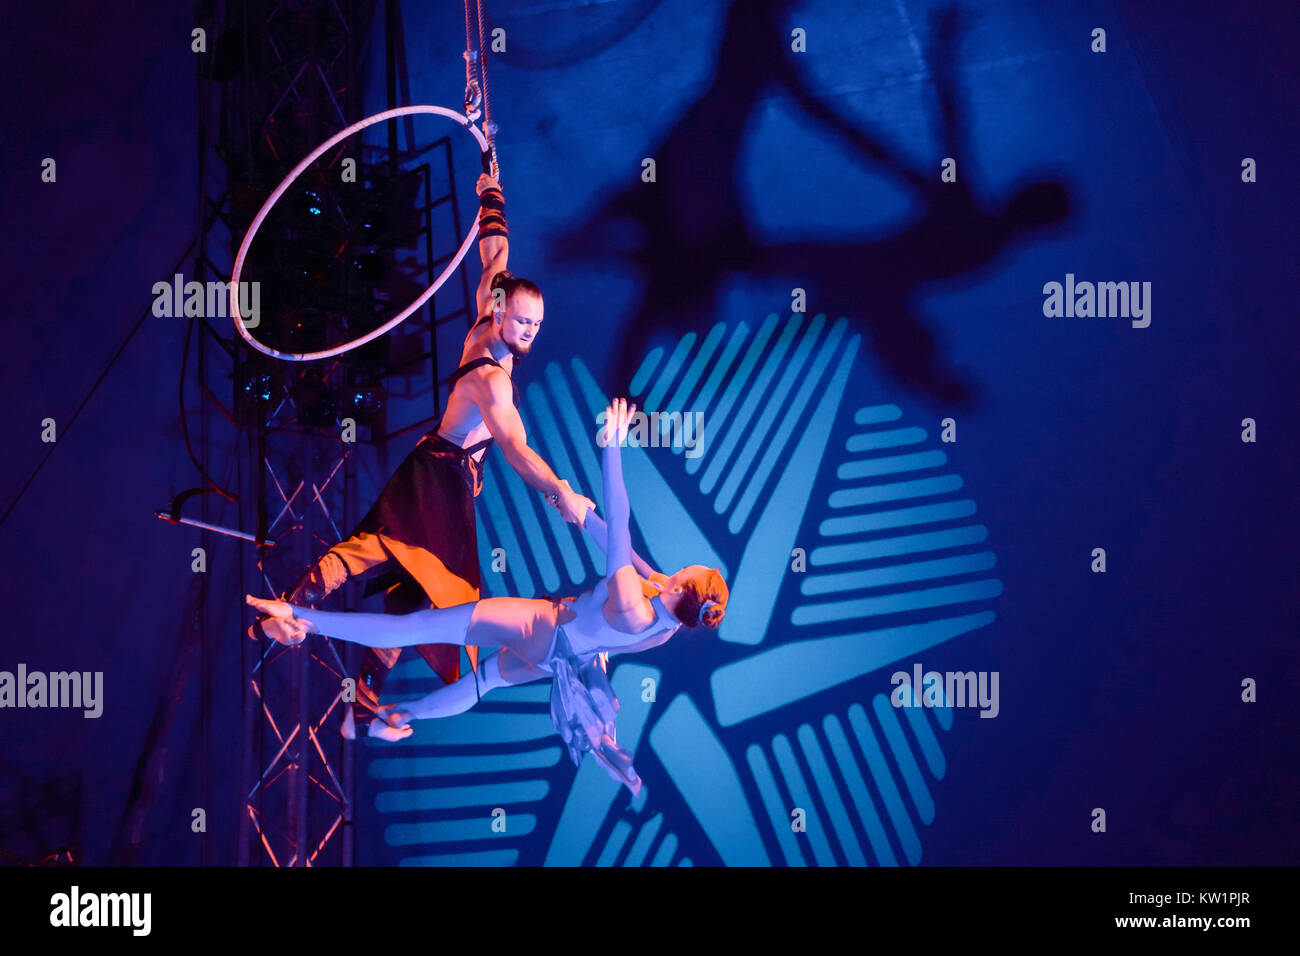 London, UK. 28th Dec, 2017. Performers on the arial hoop at The Moscow State Circus under the big top in Ealing, - Stock Image